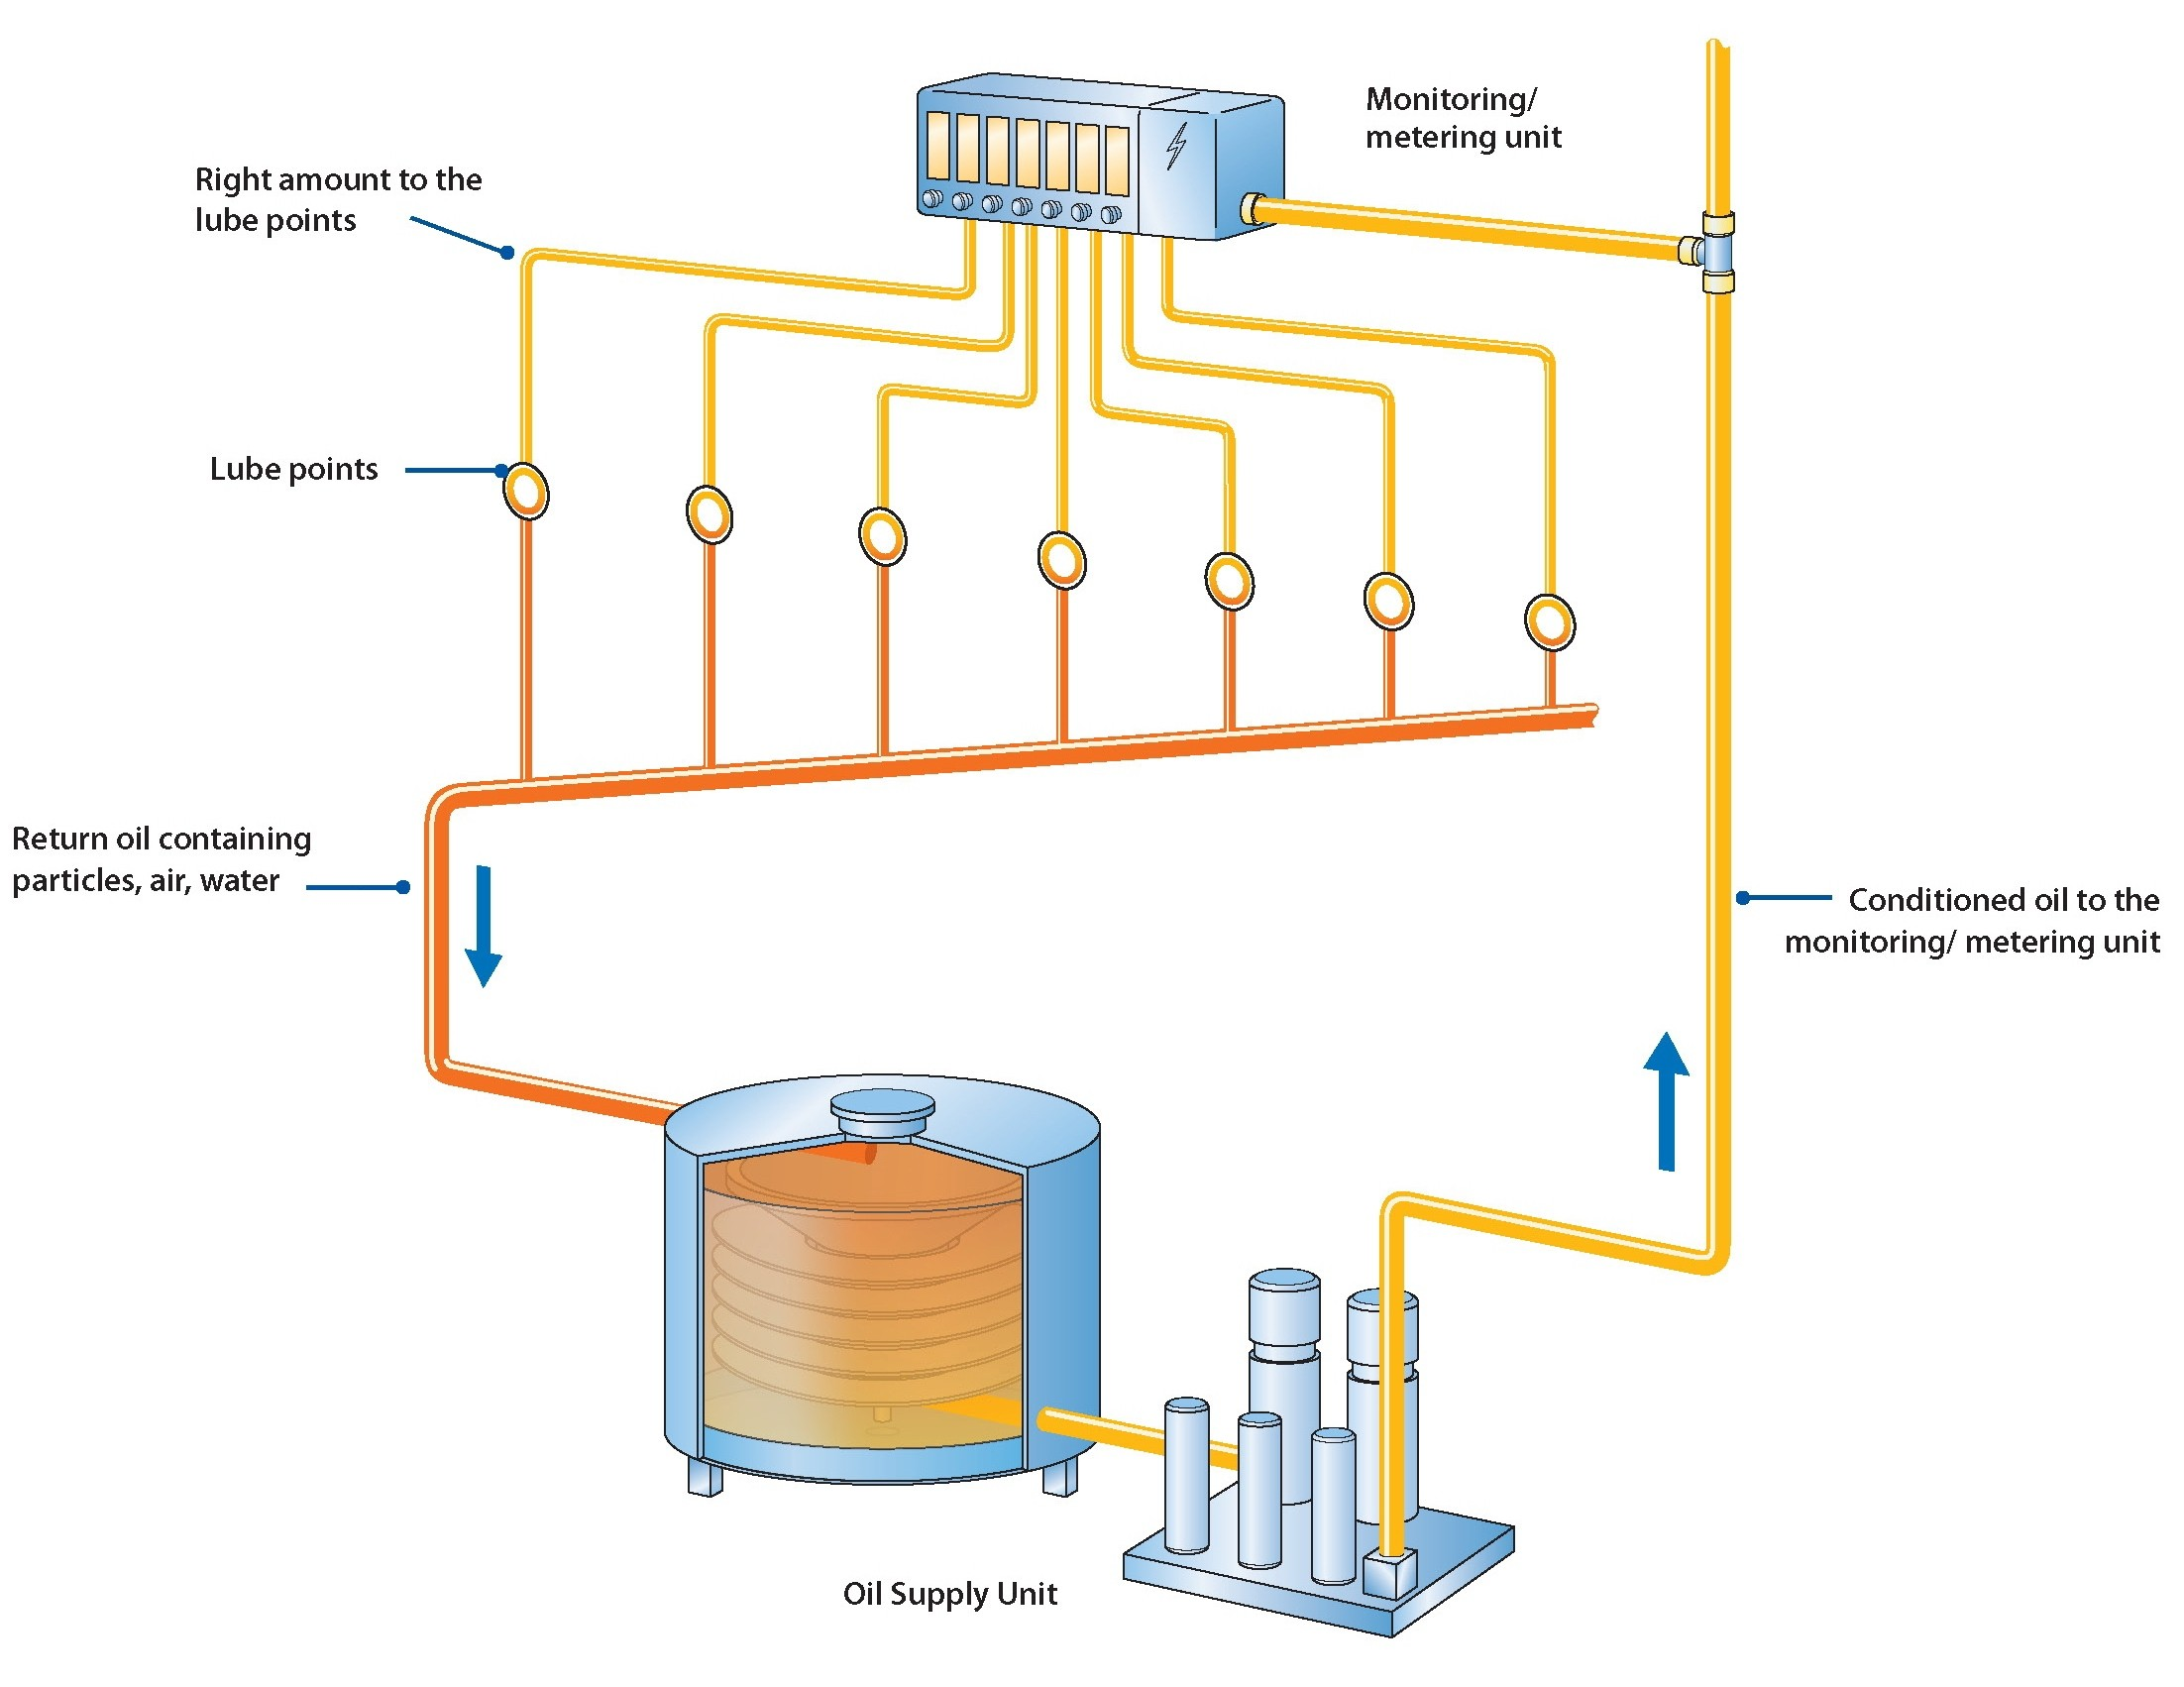 Lube Oil Diagram №181499000 Skf Circoil Lube System Flo Ponents Value Added Partner and Distributor for Skf Brand Of Lube Oil Diagram №181499000